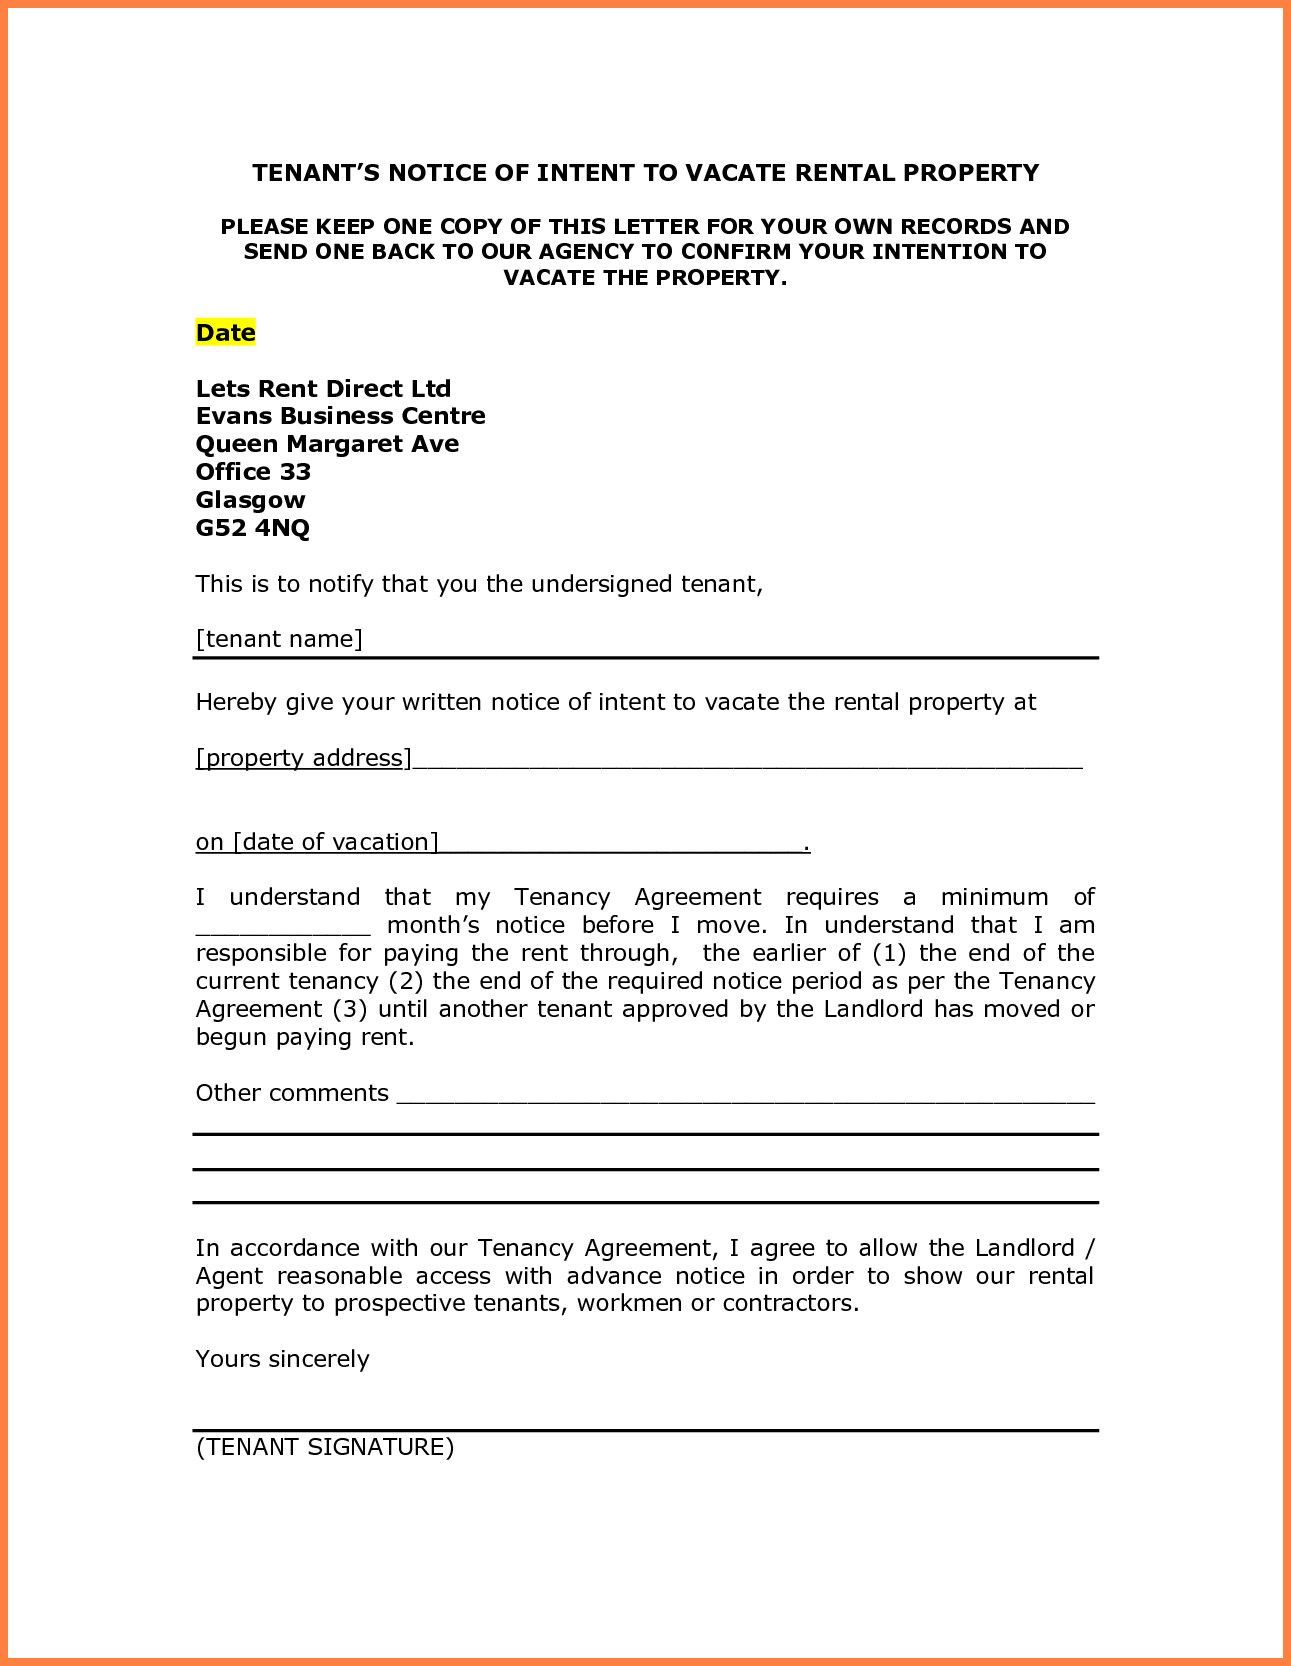 Notice To Vacate Template Very Good Notice To Vacate Apartment Letter Template Samples Of 36 Lettering Letter Templates Letter Template Word